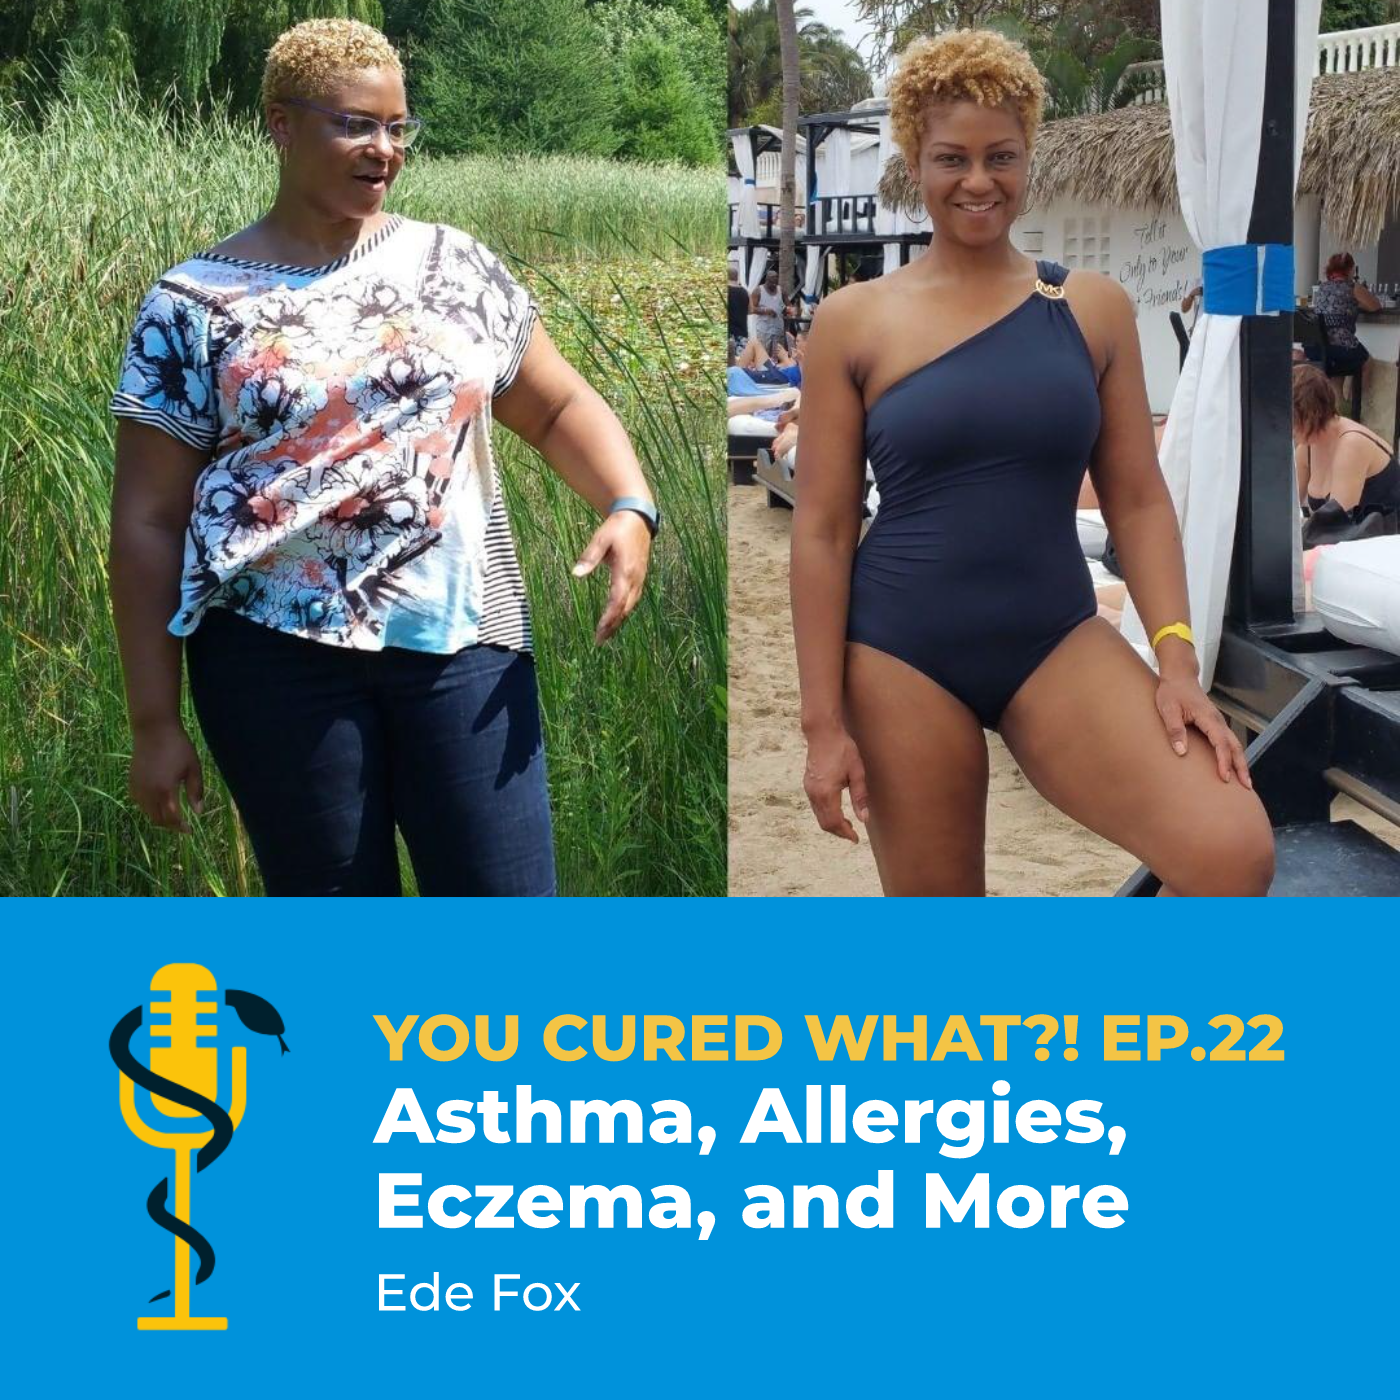 Ep.22: Asthma, Allergies, Eczema, and More with Ede Fox